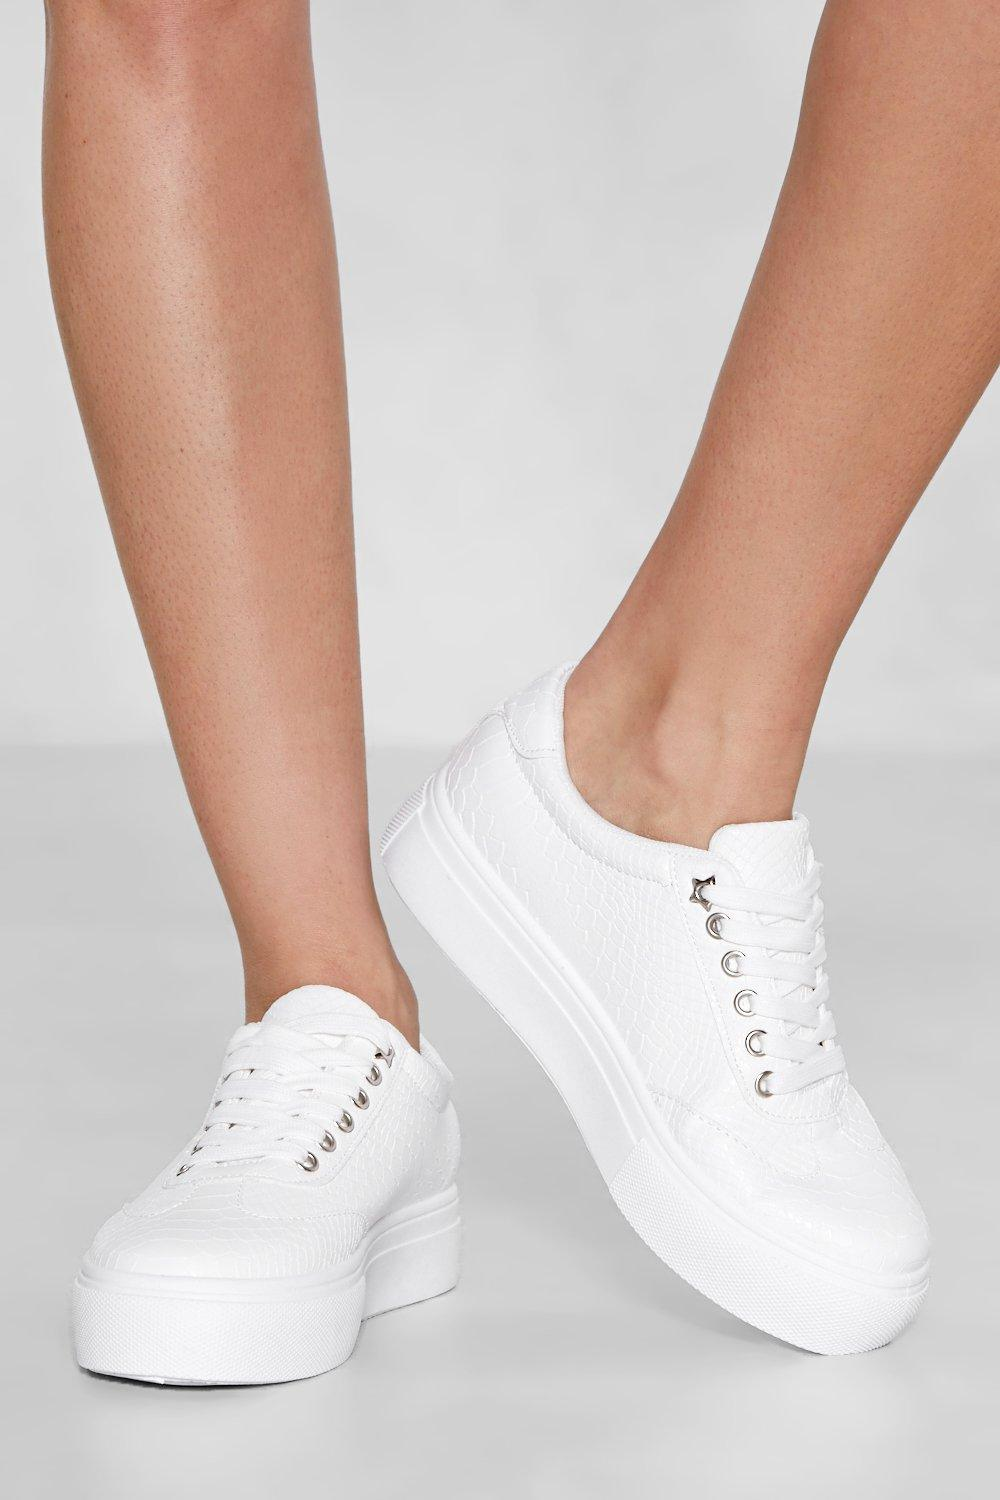 ca37c04a5 Croc With Me Faux Leather Platform Sneaker | Shop Clothes at Nasty Gal!